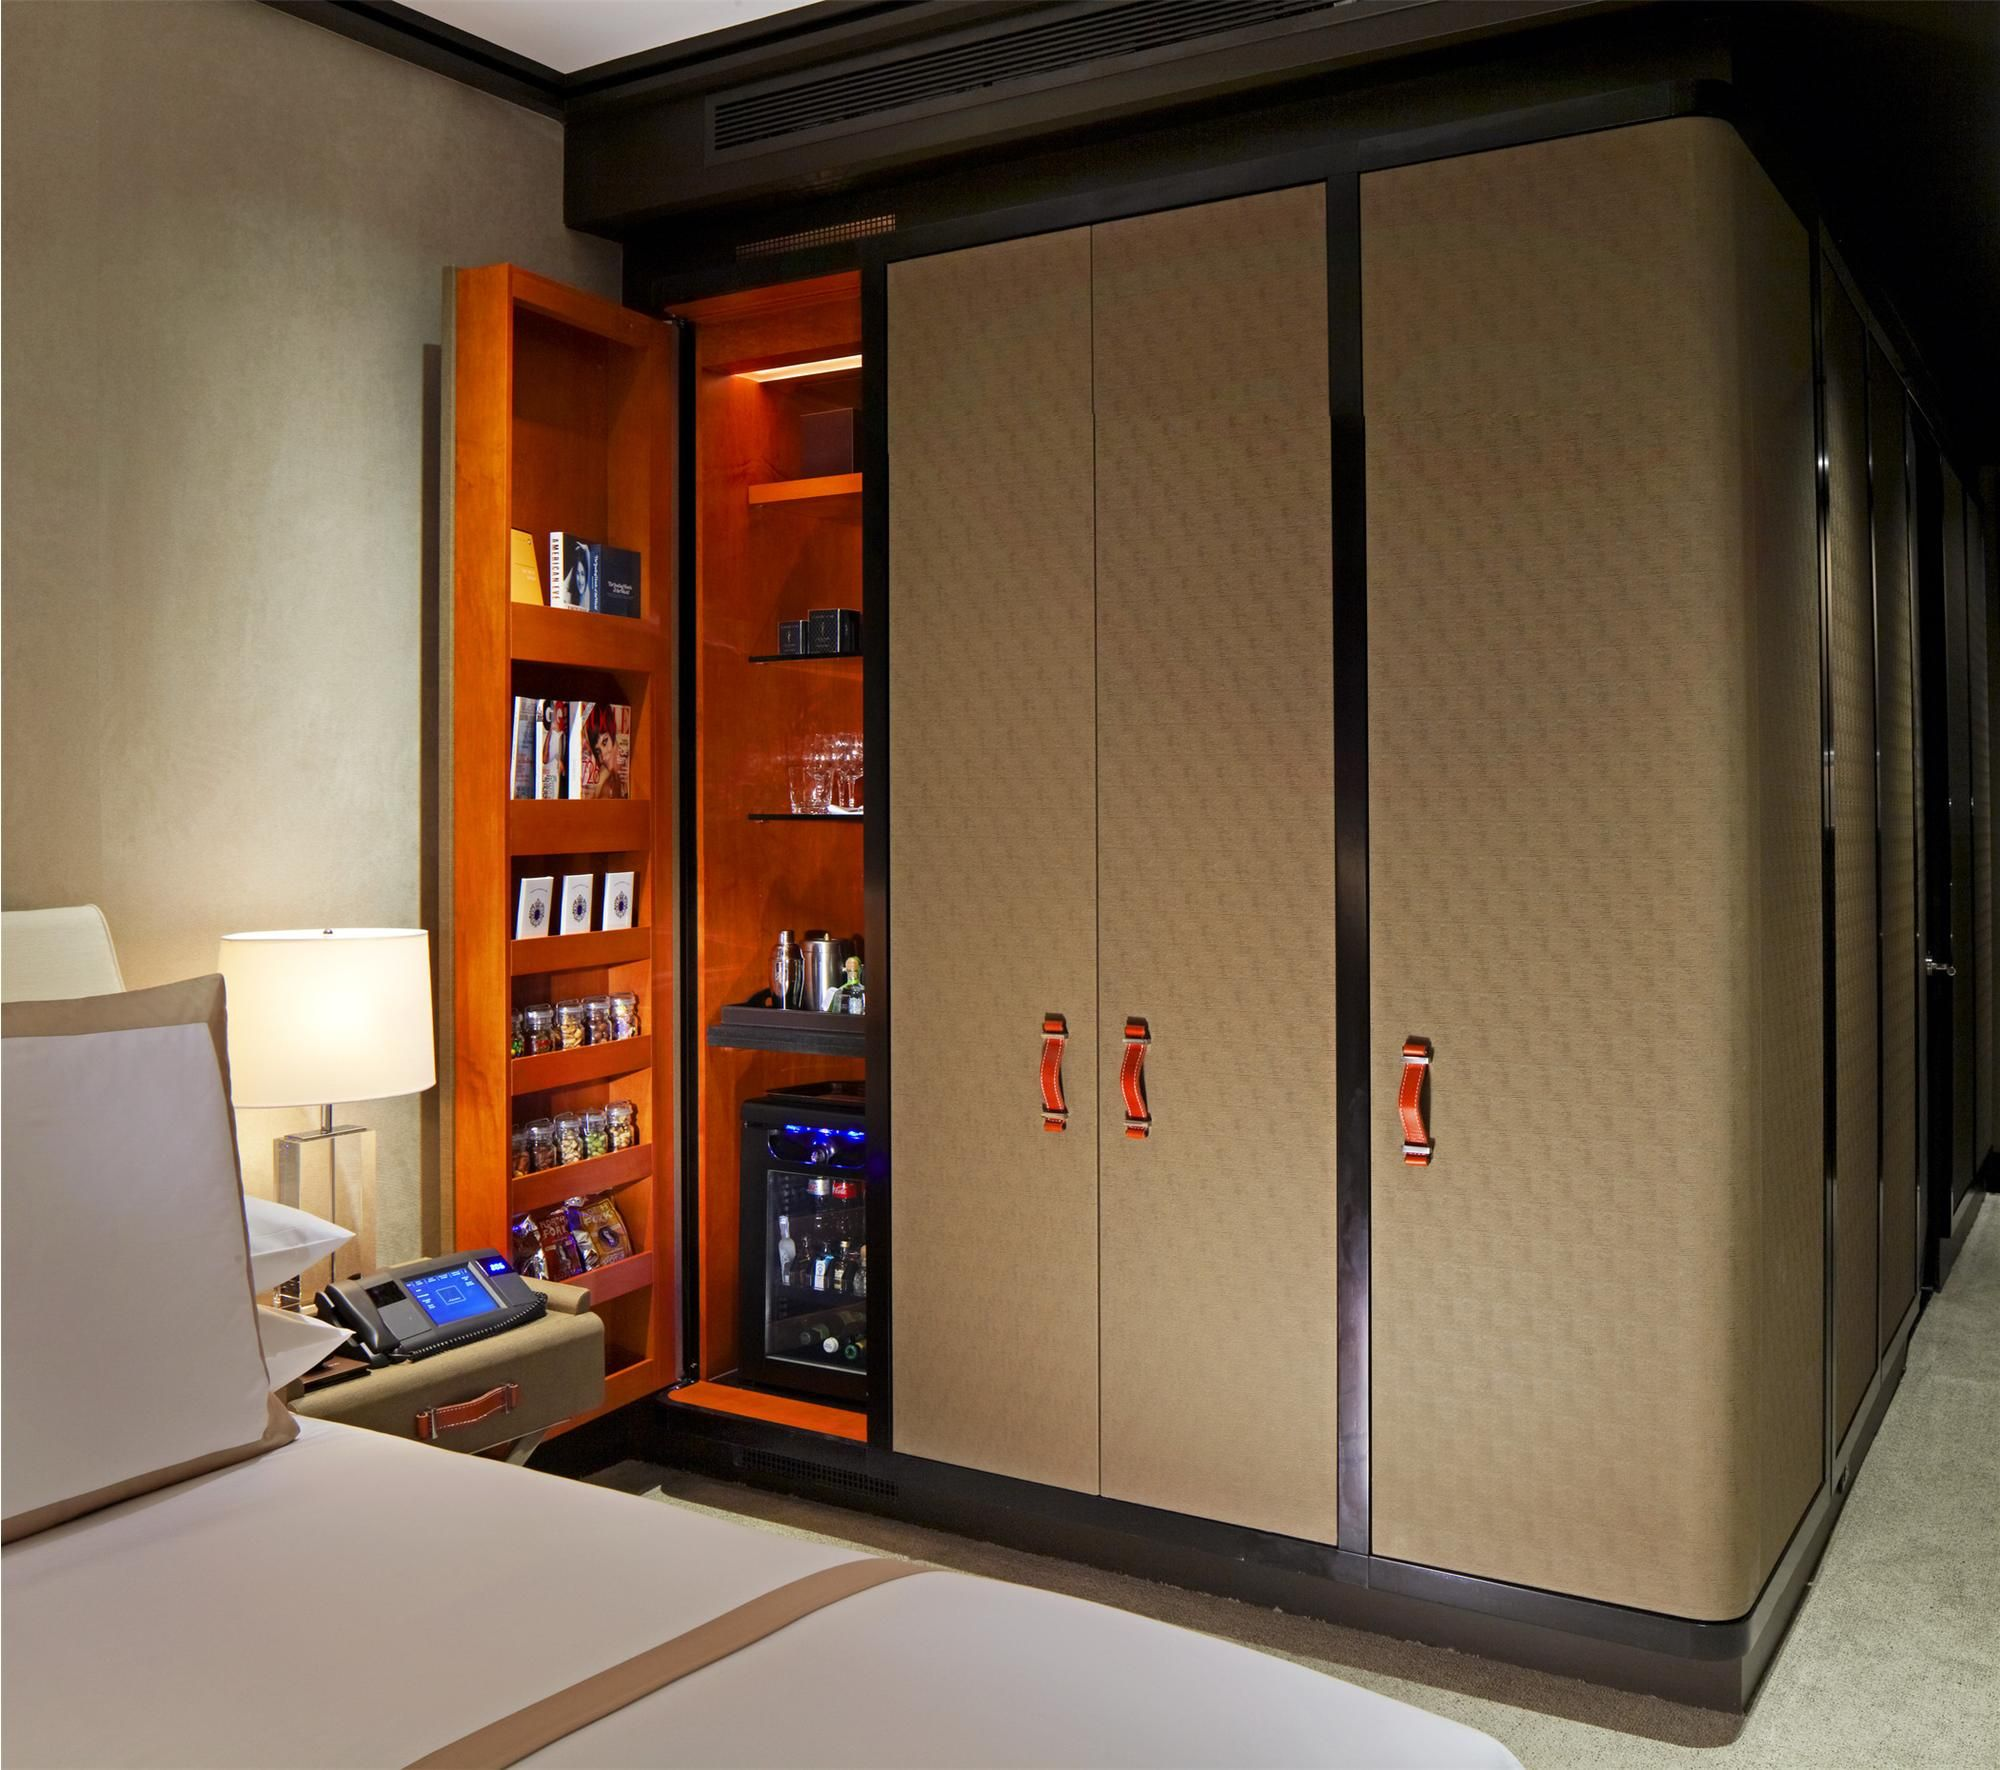 Luxury Hotel Room Interior Design: Luxury Collection New York Hotels: The Chatwal, New York